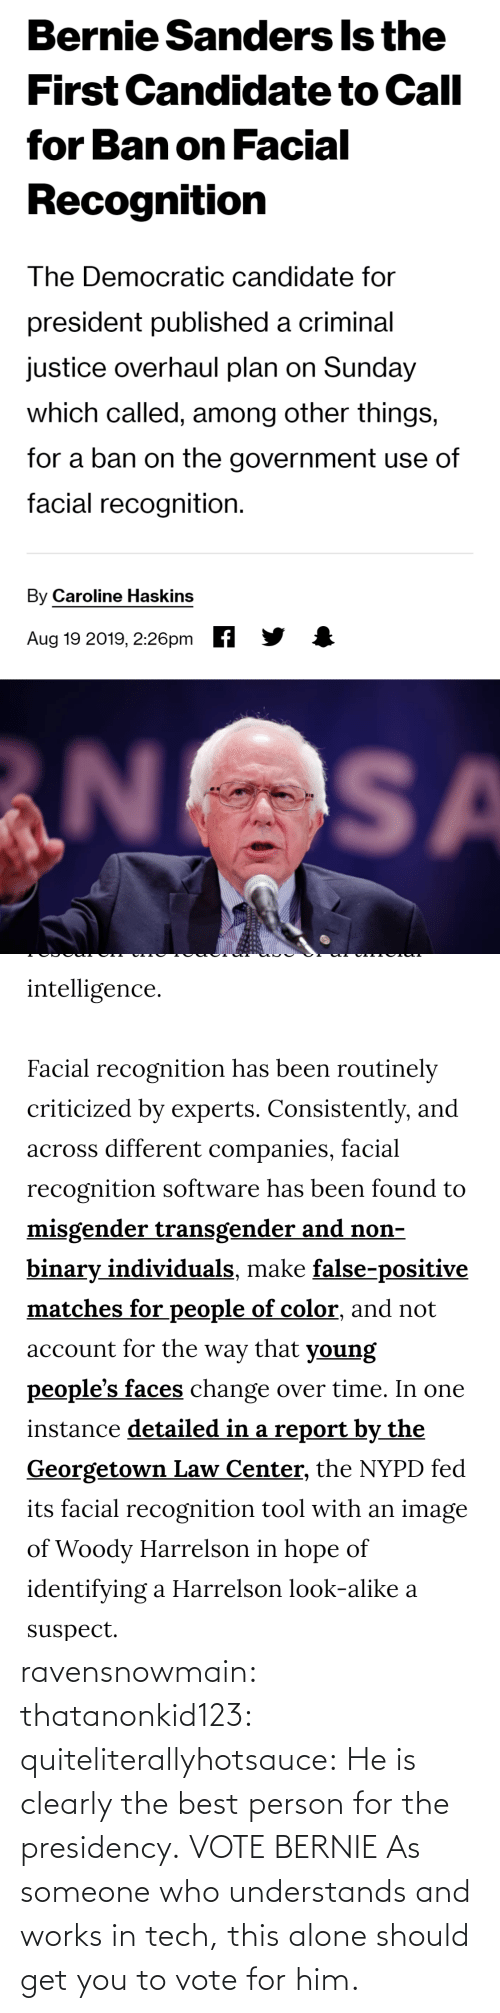 vote: ravensnowmain: thatanonkid123:  quiteliterallyhotsauce:   He is clearly the best person for the presidency.     VOTE BERNIE  As someone who understands and works in tech, this alone should get you to vote for him.